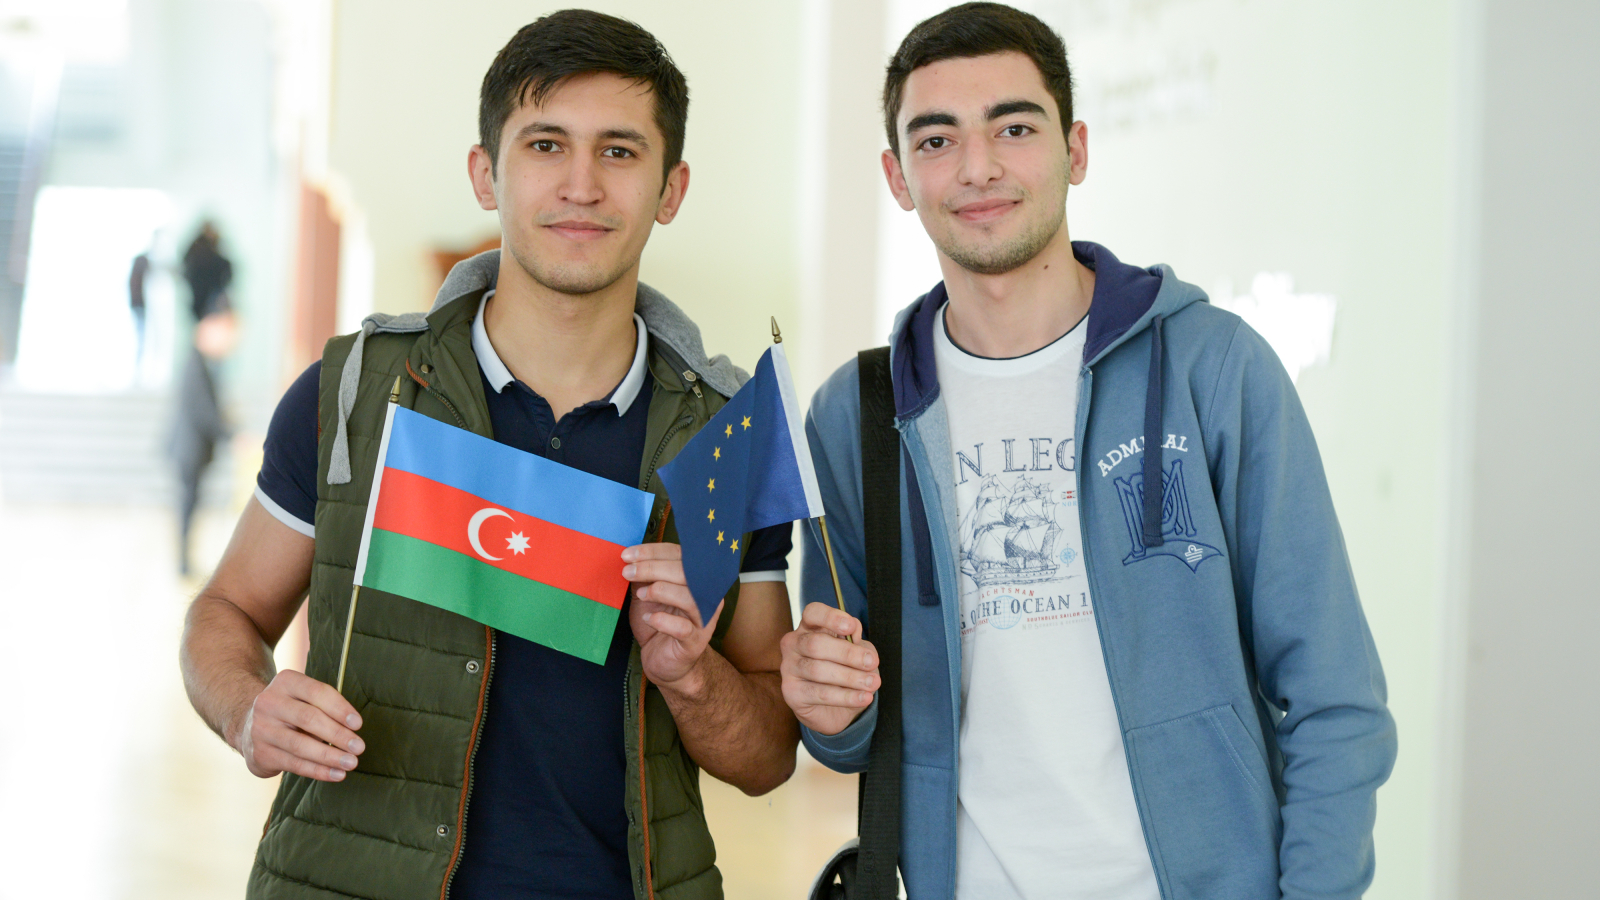 EU actively engages youth in projects and activities it supports in Azerbaijan